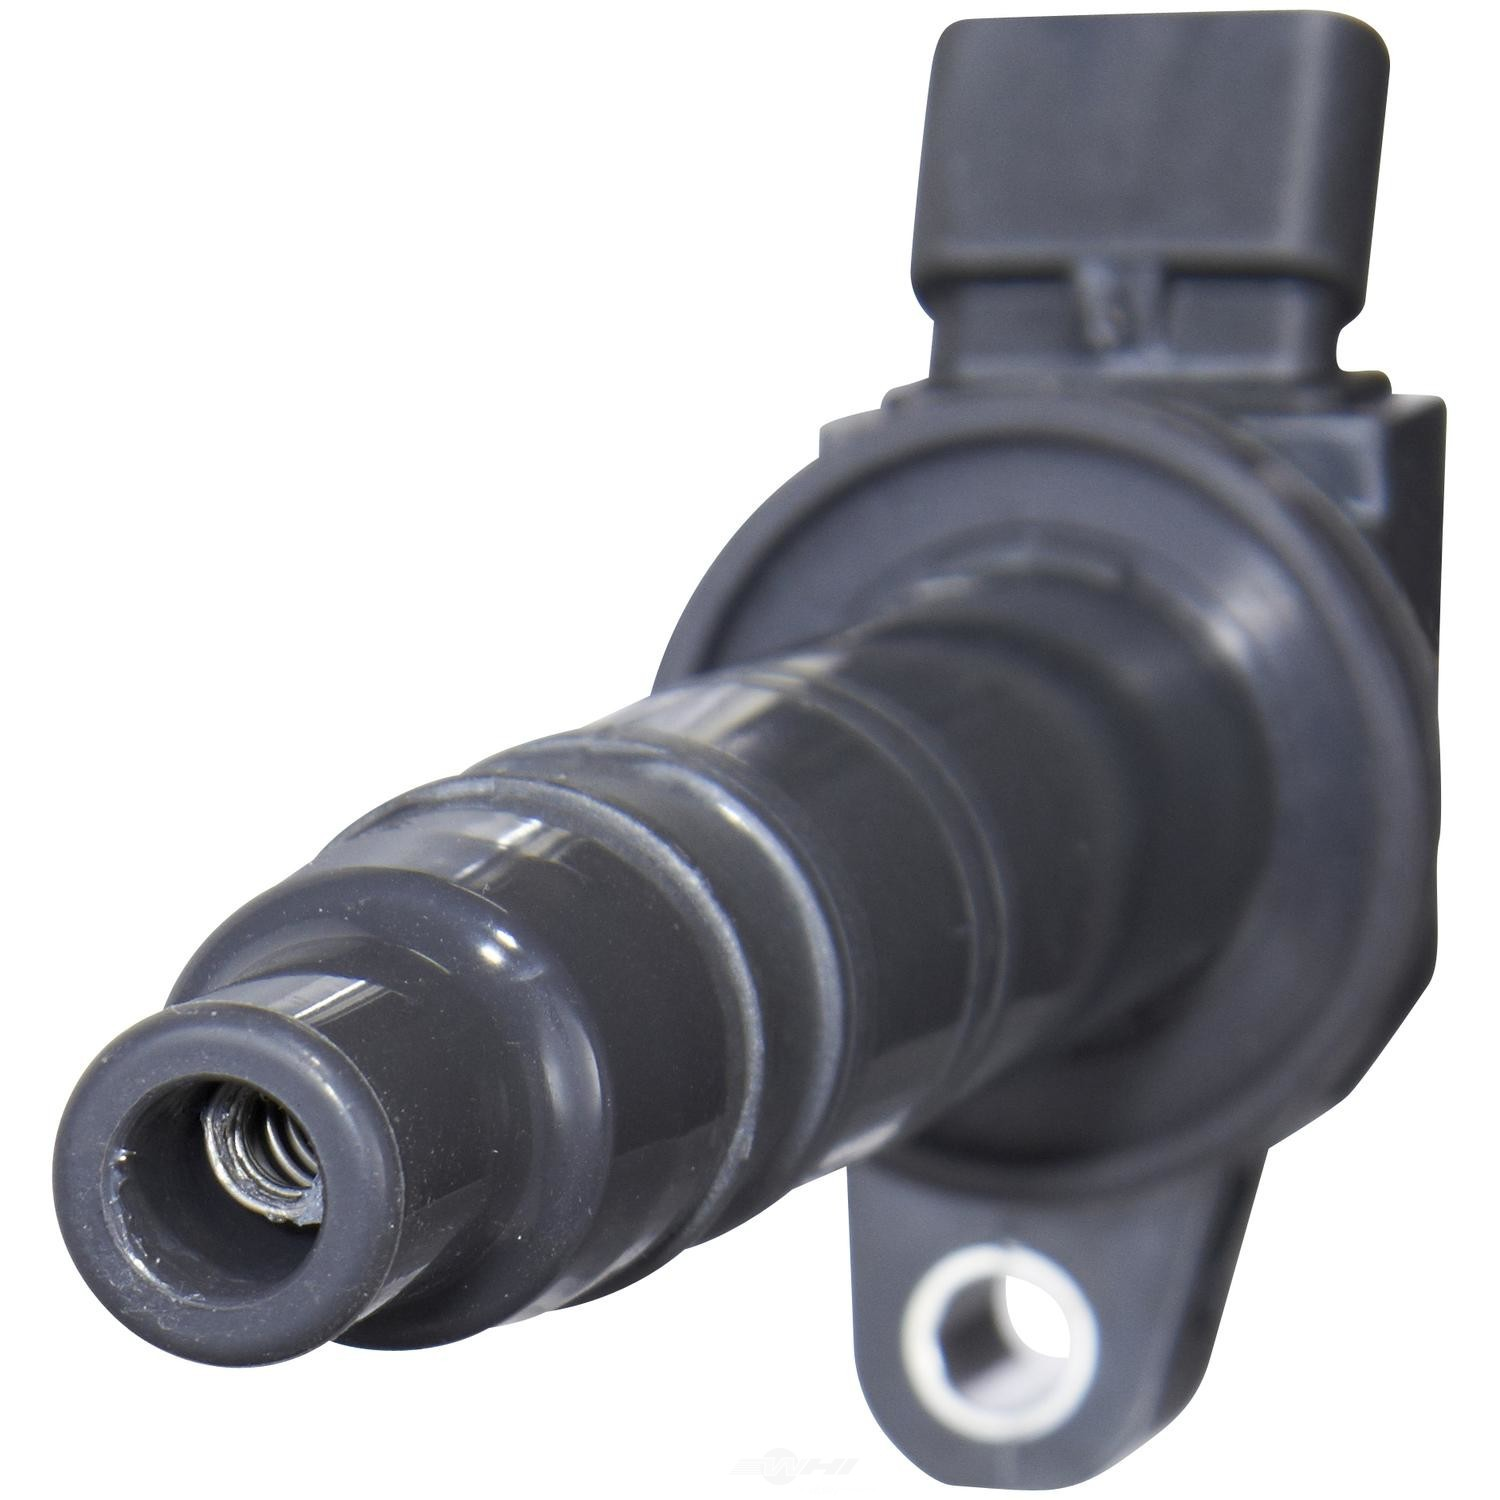 SPECTRA PREMIUM IND, INC. - Ignition Coil - SPC C-666